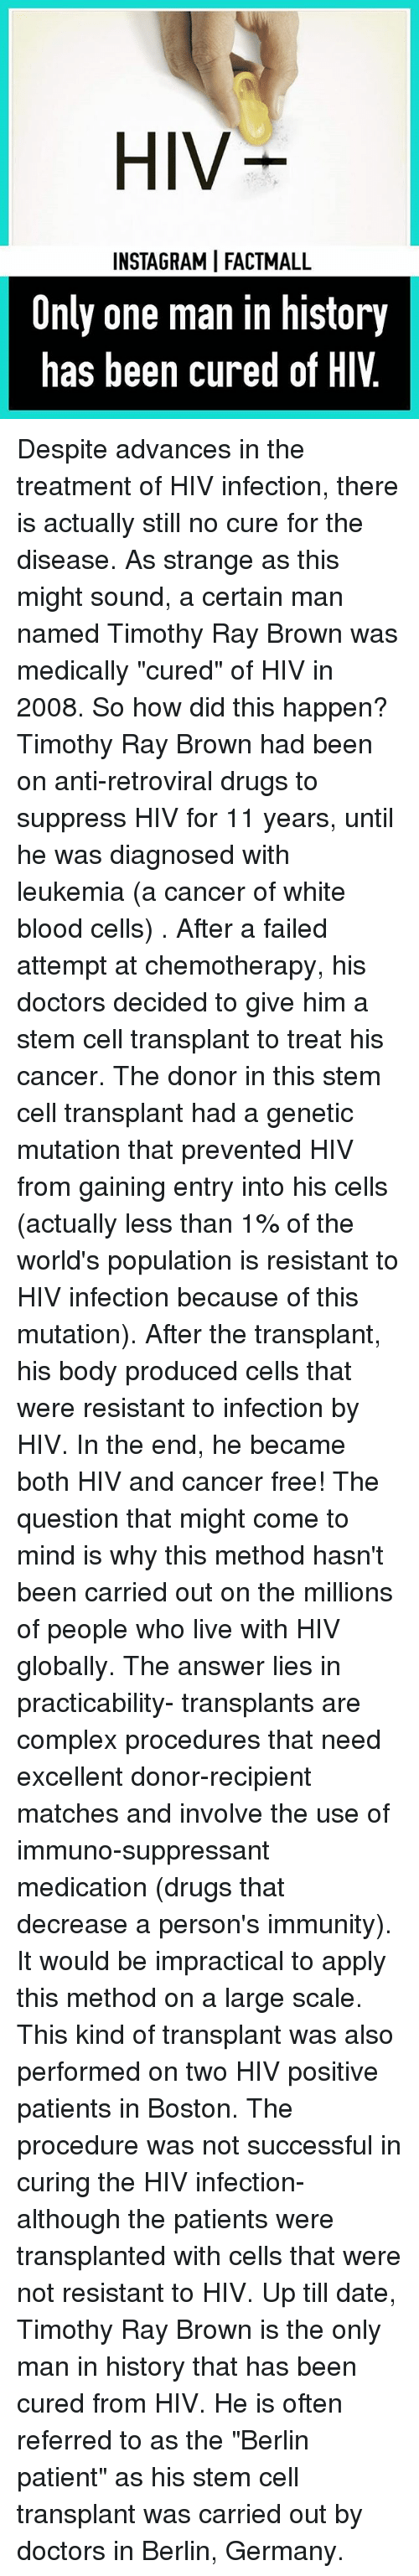 """Hiv Positive: HIV  INSTAGRAMI FACT MALL  Only one man in history  has been cured of HIV Despite advances in the treatment of HIV infection, there is actually still no cure for the disease. As strange as this might sound, a certain man named Timothy Ray Brown was medically """"cured"""" of HIV in 2008. So how did this happen? Timothy Ray Brown had been on anti-retroviral drugs to suppress HIV for 11 years, until he was diagnosed with leukemia (a cancer of white blood cells) . After a failed attempt at chemotherapy, his doctors decided to give him a stem cell transplant to treat his cancer. The donor in this stem cell transplant had a genetic mutation that prevented HIV from gaining entry into his cells (actually less than 1% of the world's population is resistant to HIV infection because of this mutation). After the transplant, his body produced cells that were resistant to infection by HIV. In the end, he became both HIV and cancer free! The question that might come to mind is why this method hasn't been carried out on the millions of people who live with HIV globally. The answer lies in practicability- transplants are complex procedures that need excellent donor-recipient matches and involve the use of immuno-suppressant medication (drugs that decrease a person's immunity). It would be impractical to apply this method on a large scale. This kind of transplant was also performed on two HIV positive patients in Boston. The procedure was not successful in curing the HIV infection- although the patients were transplanted with cells that were not resistant to HIV. Up till date, Timothy Ray Brown is the only man in history that has been cured from HIV. He is often referred to as the """"Berlin patient"""" as his stem cell transplant was carried out by doctors in Berlin, Germany."""